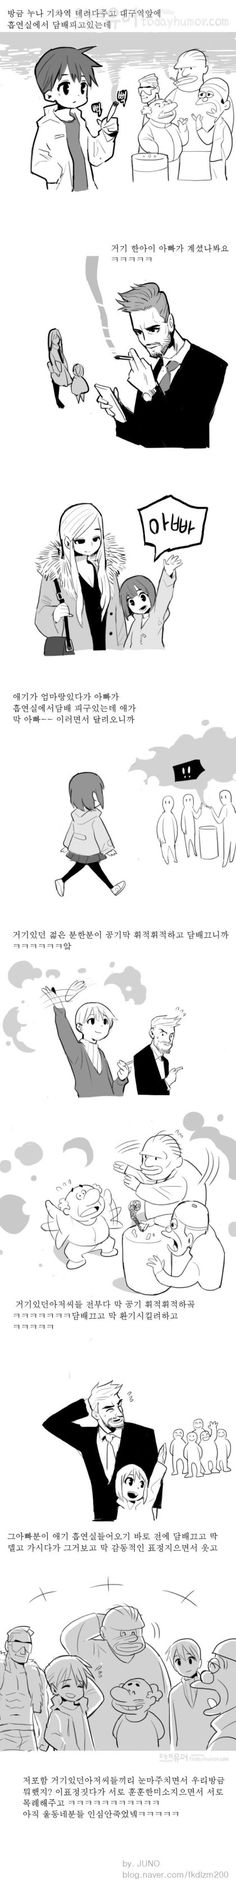 Drawing Practice, Manhwa, Cartoon, Humor, Comics, Memes, Drawings, Funny, Cute